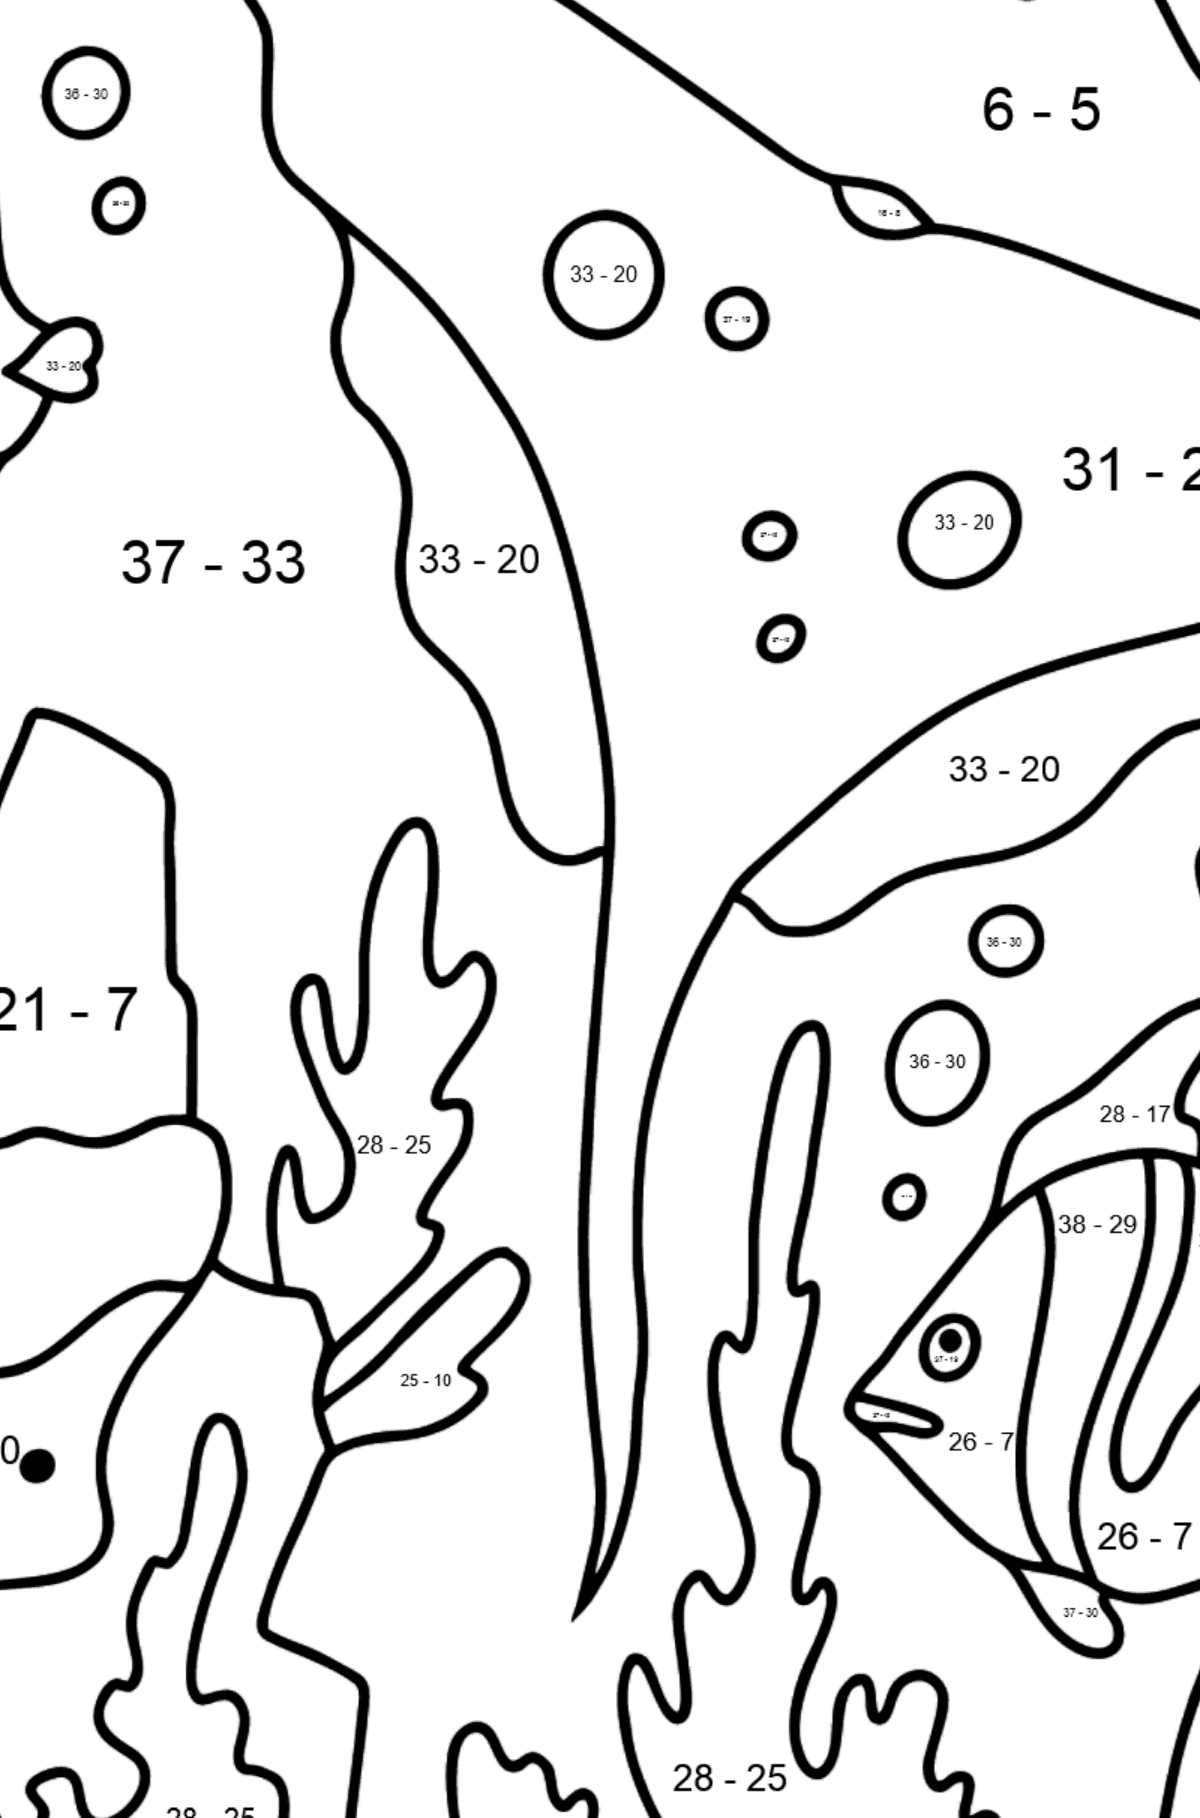 Coloring Page - Fish are Swimming past a Ray - Math Coloring - Subtraction for Kids